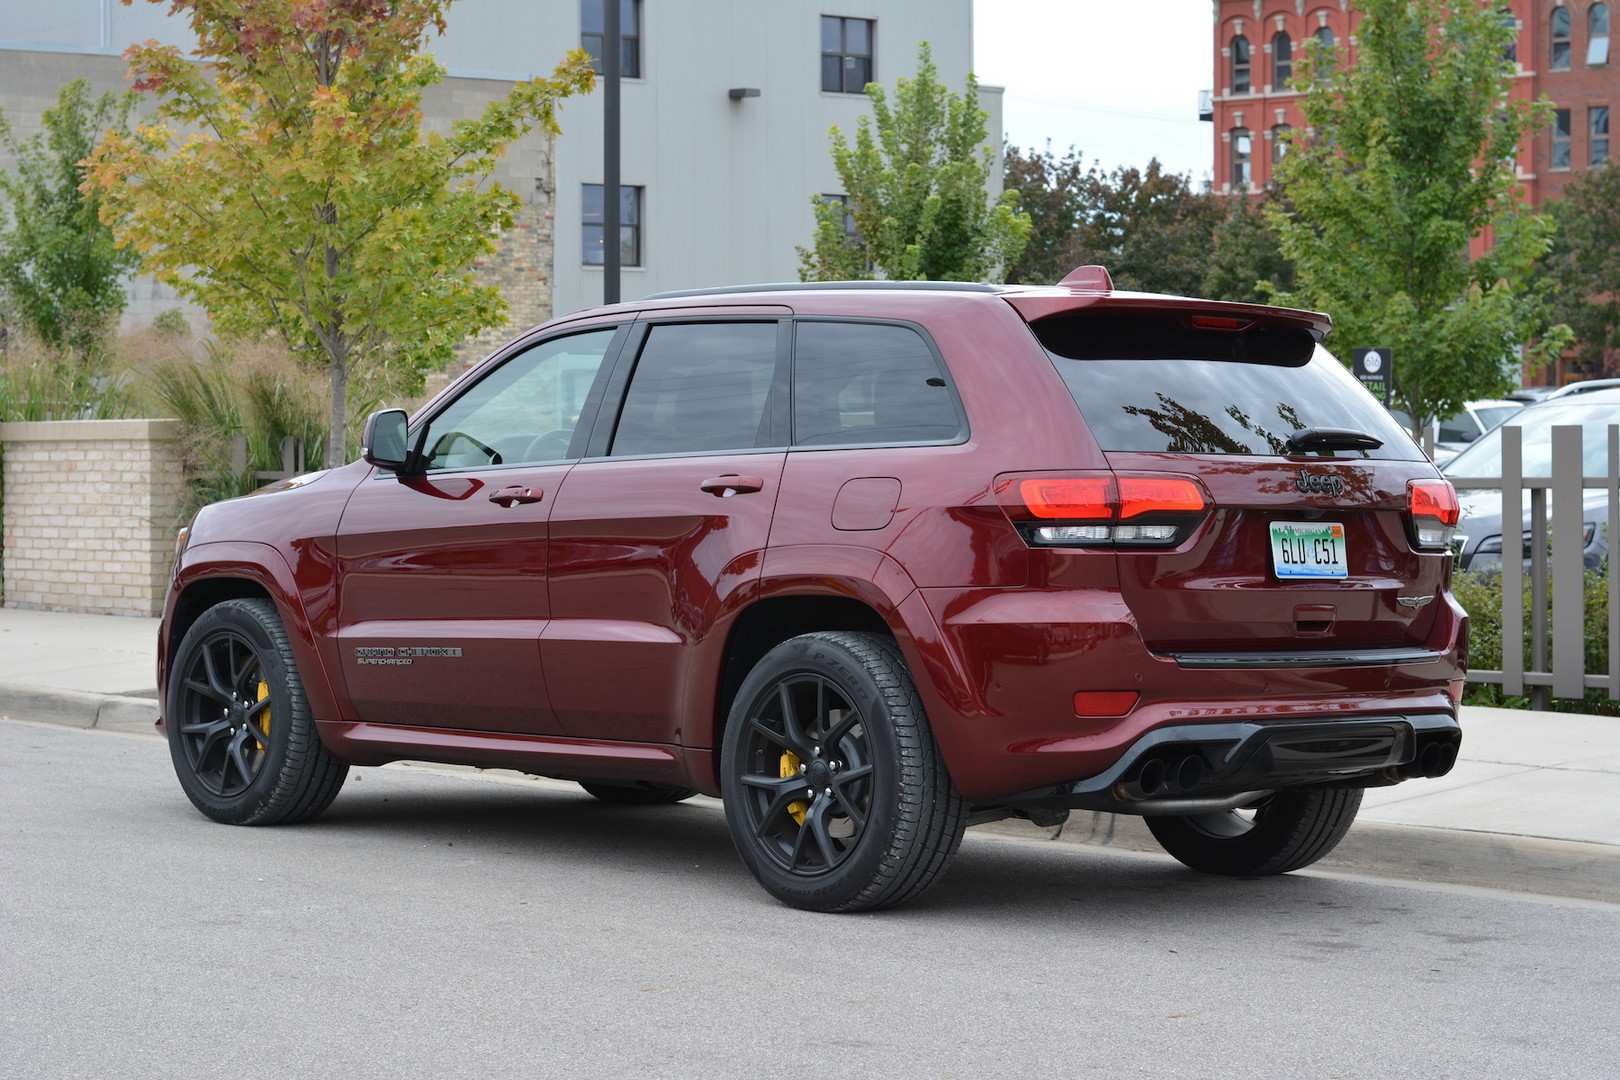 46 All New 2019 Jeep Grand Cherokee Trackhawk Style